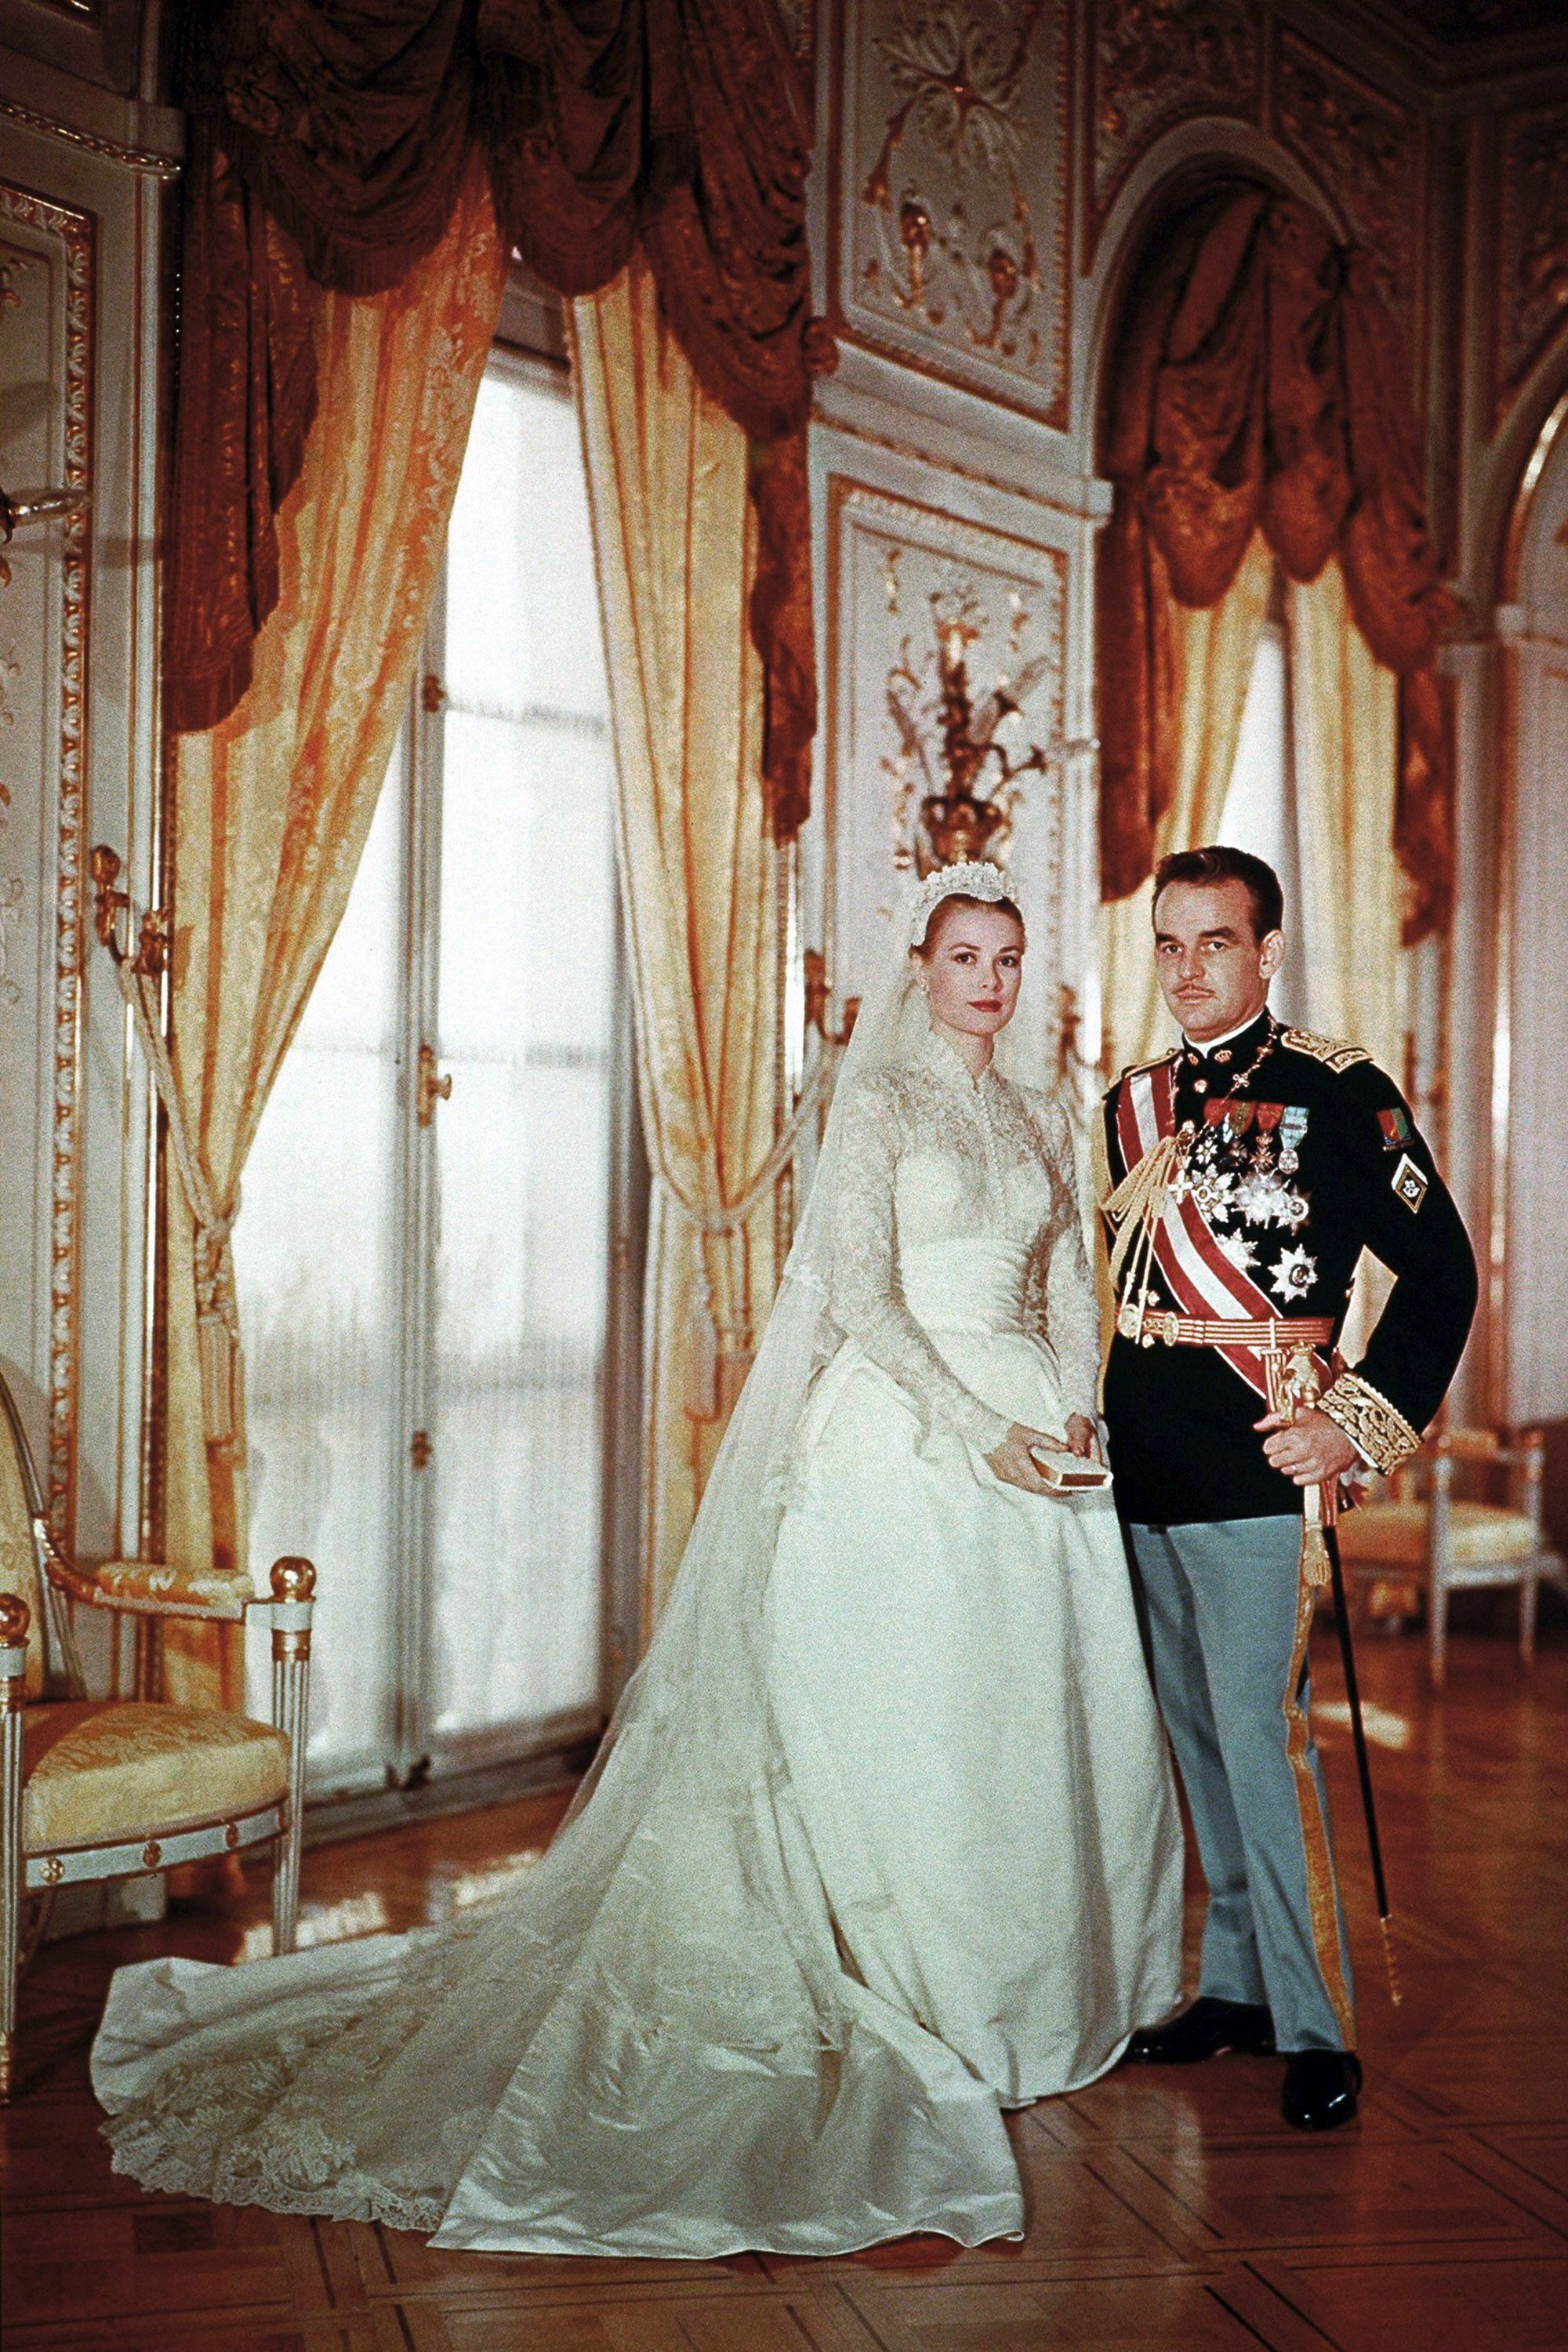 The most iconic royal wedding gowns of all time jewelry stores the most iconic royal wedding gowns of all time ombrellifo Gallery